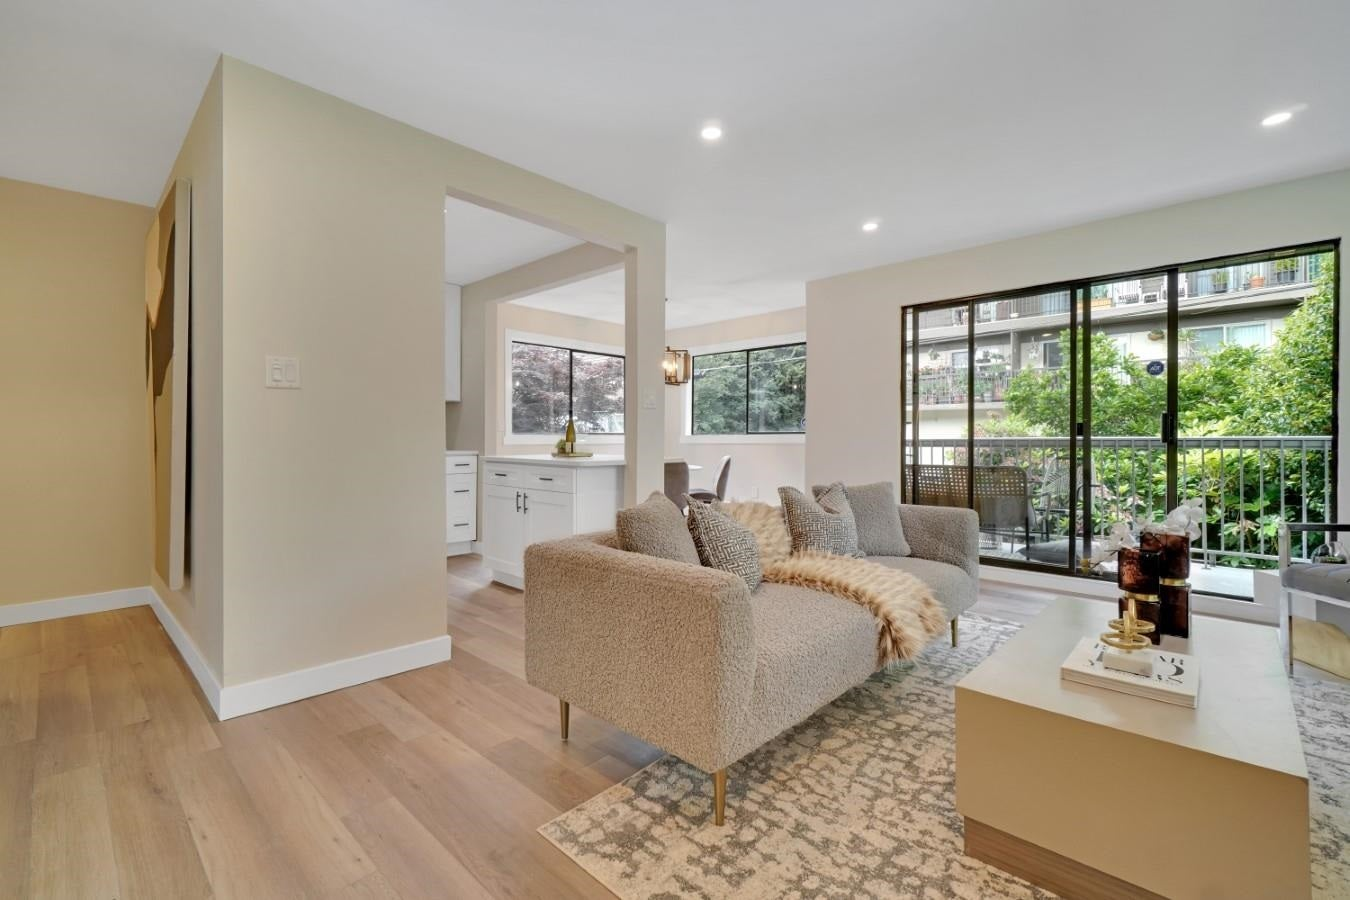 206 330 W 2ND STREET - Lower Lonsdale Apartment/Condo for sale, 2 Bedrooms (R2604160) - #7